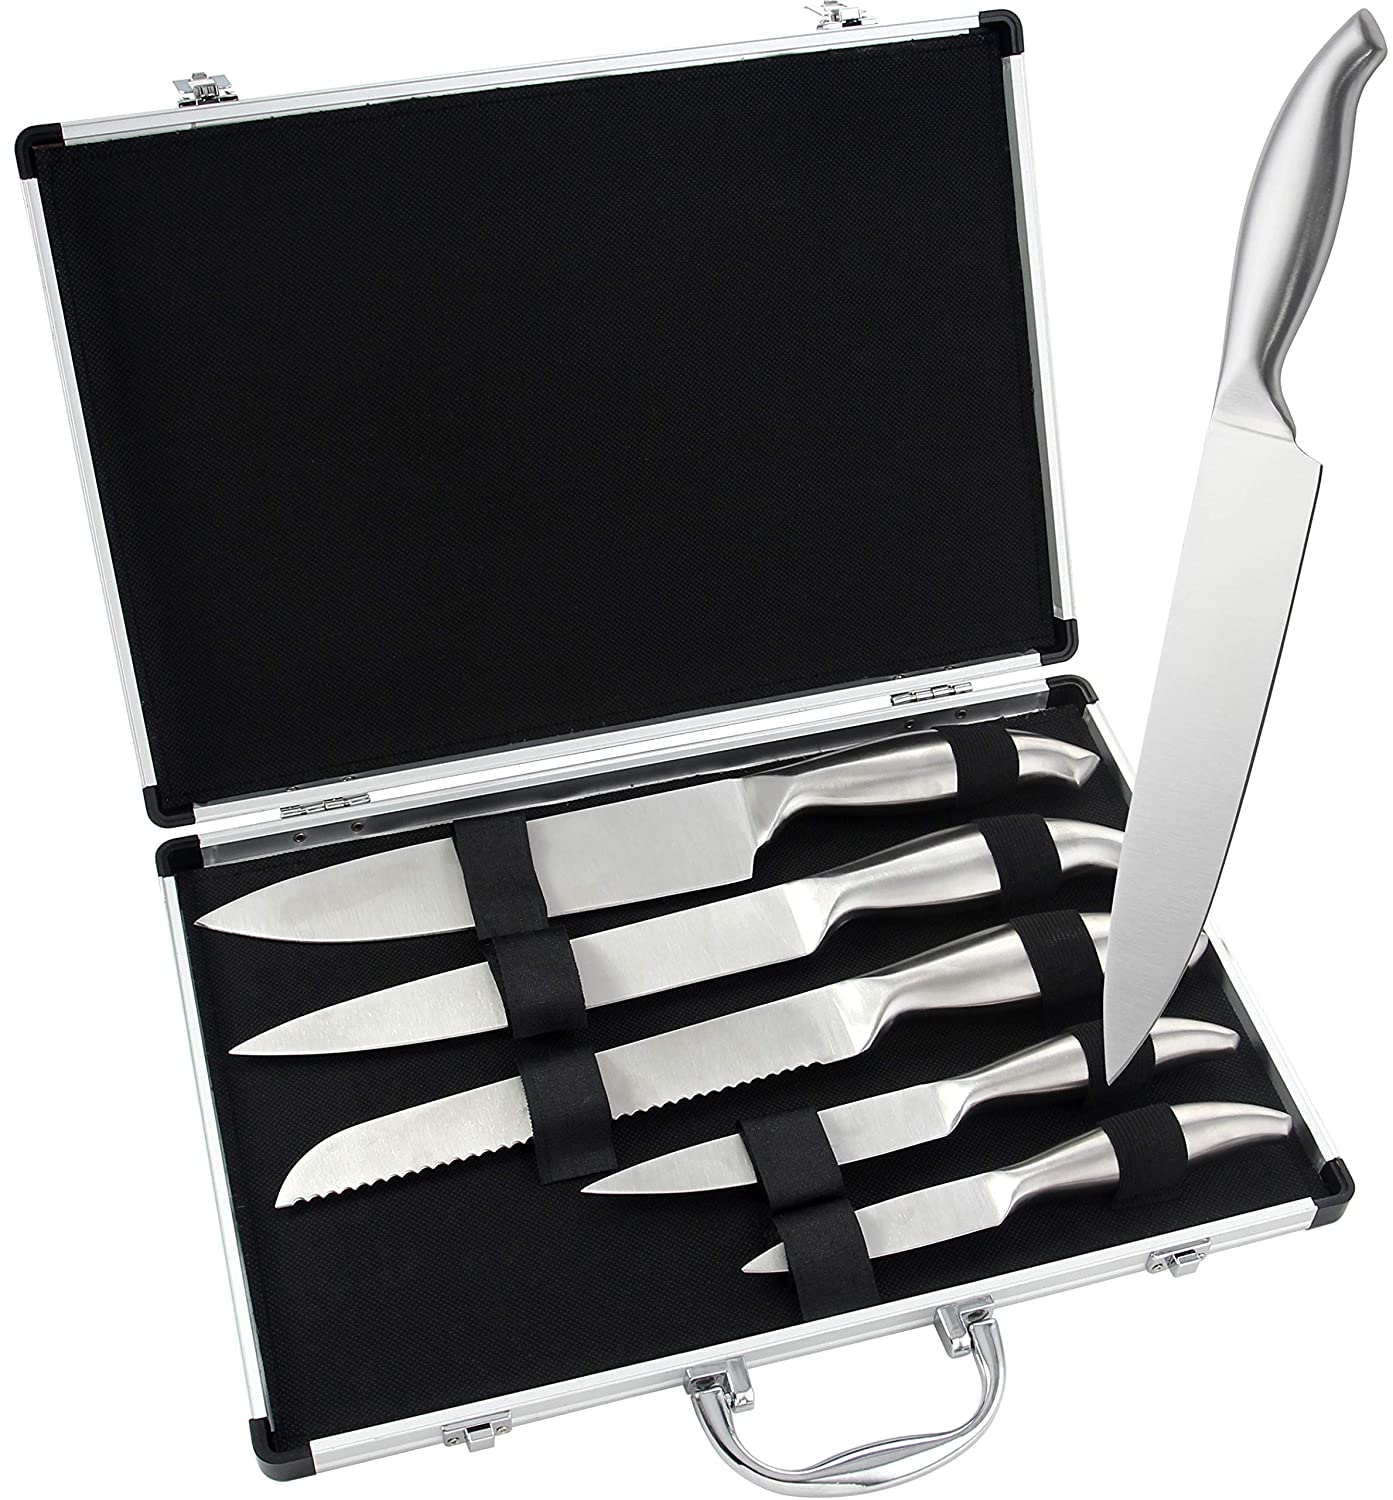 ROMANTICIST 6pc Professional Kitchen Chef Knife Set with Aluminium Case - Heavy Duty Stainless Steel Grill Cooking Knife Set for Camping - Ideal Home Gift Set for Chef Cooks